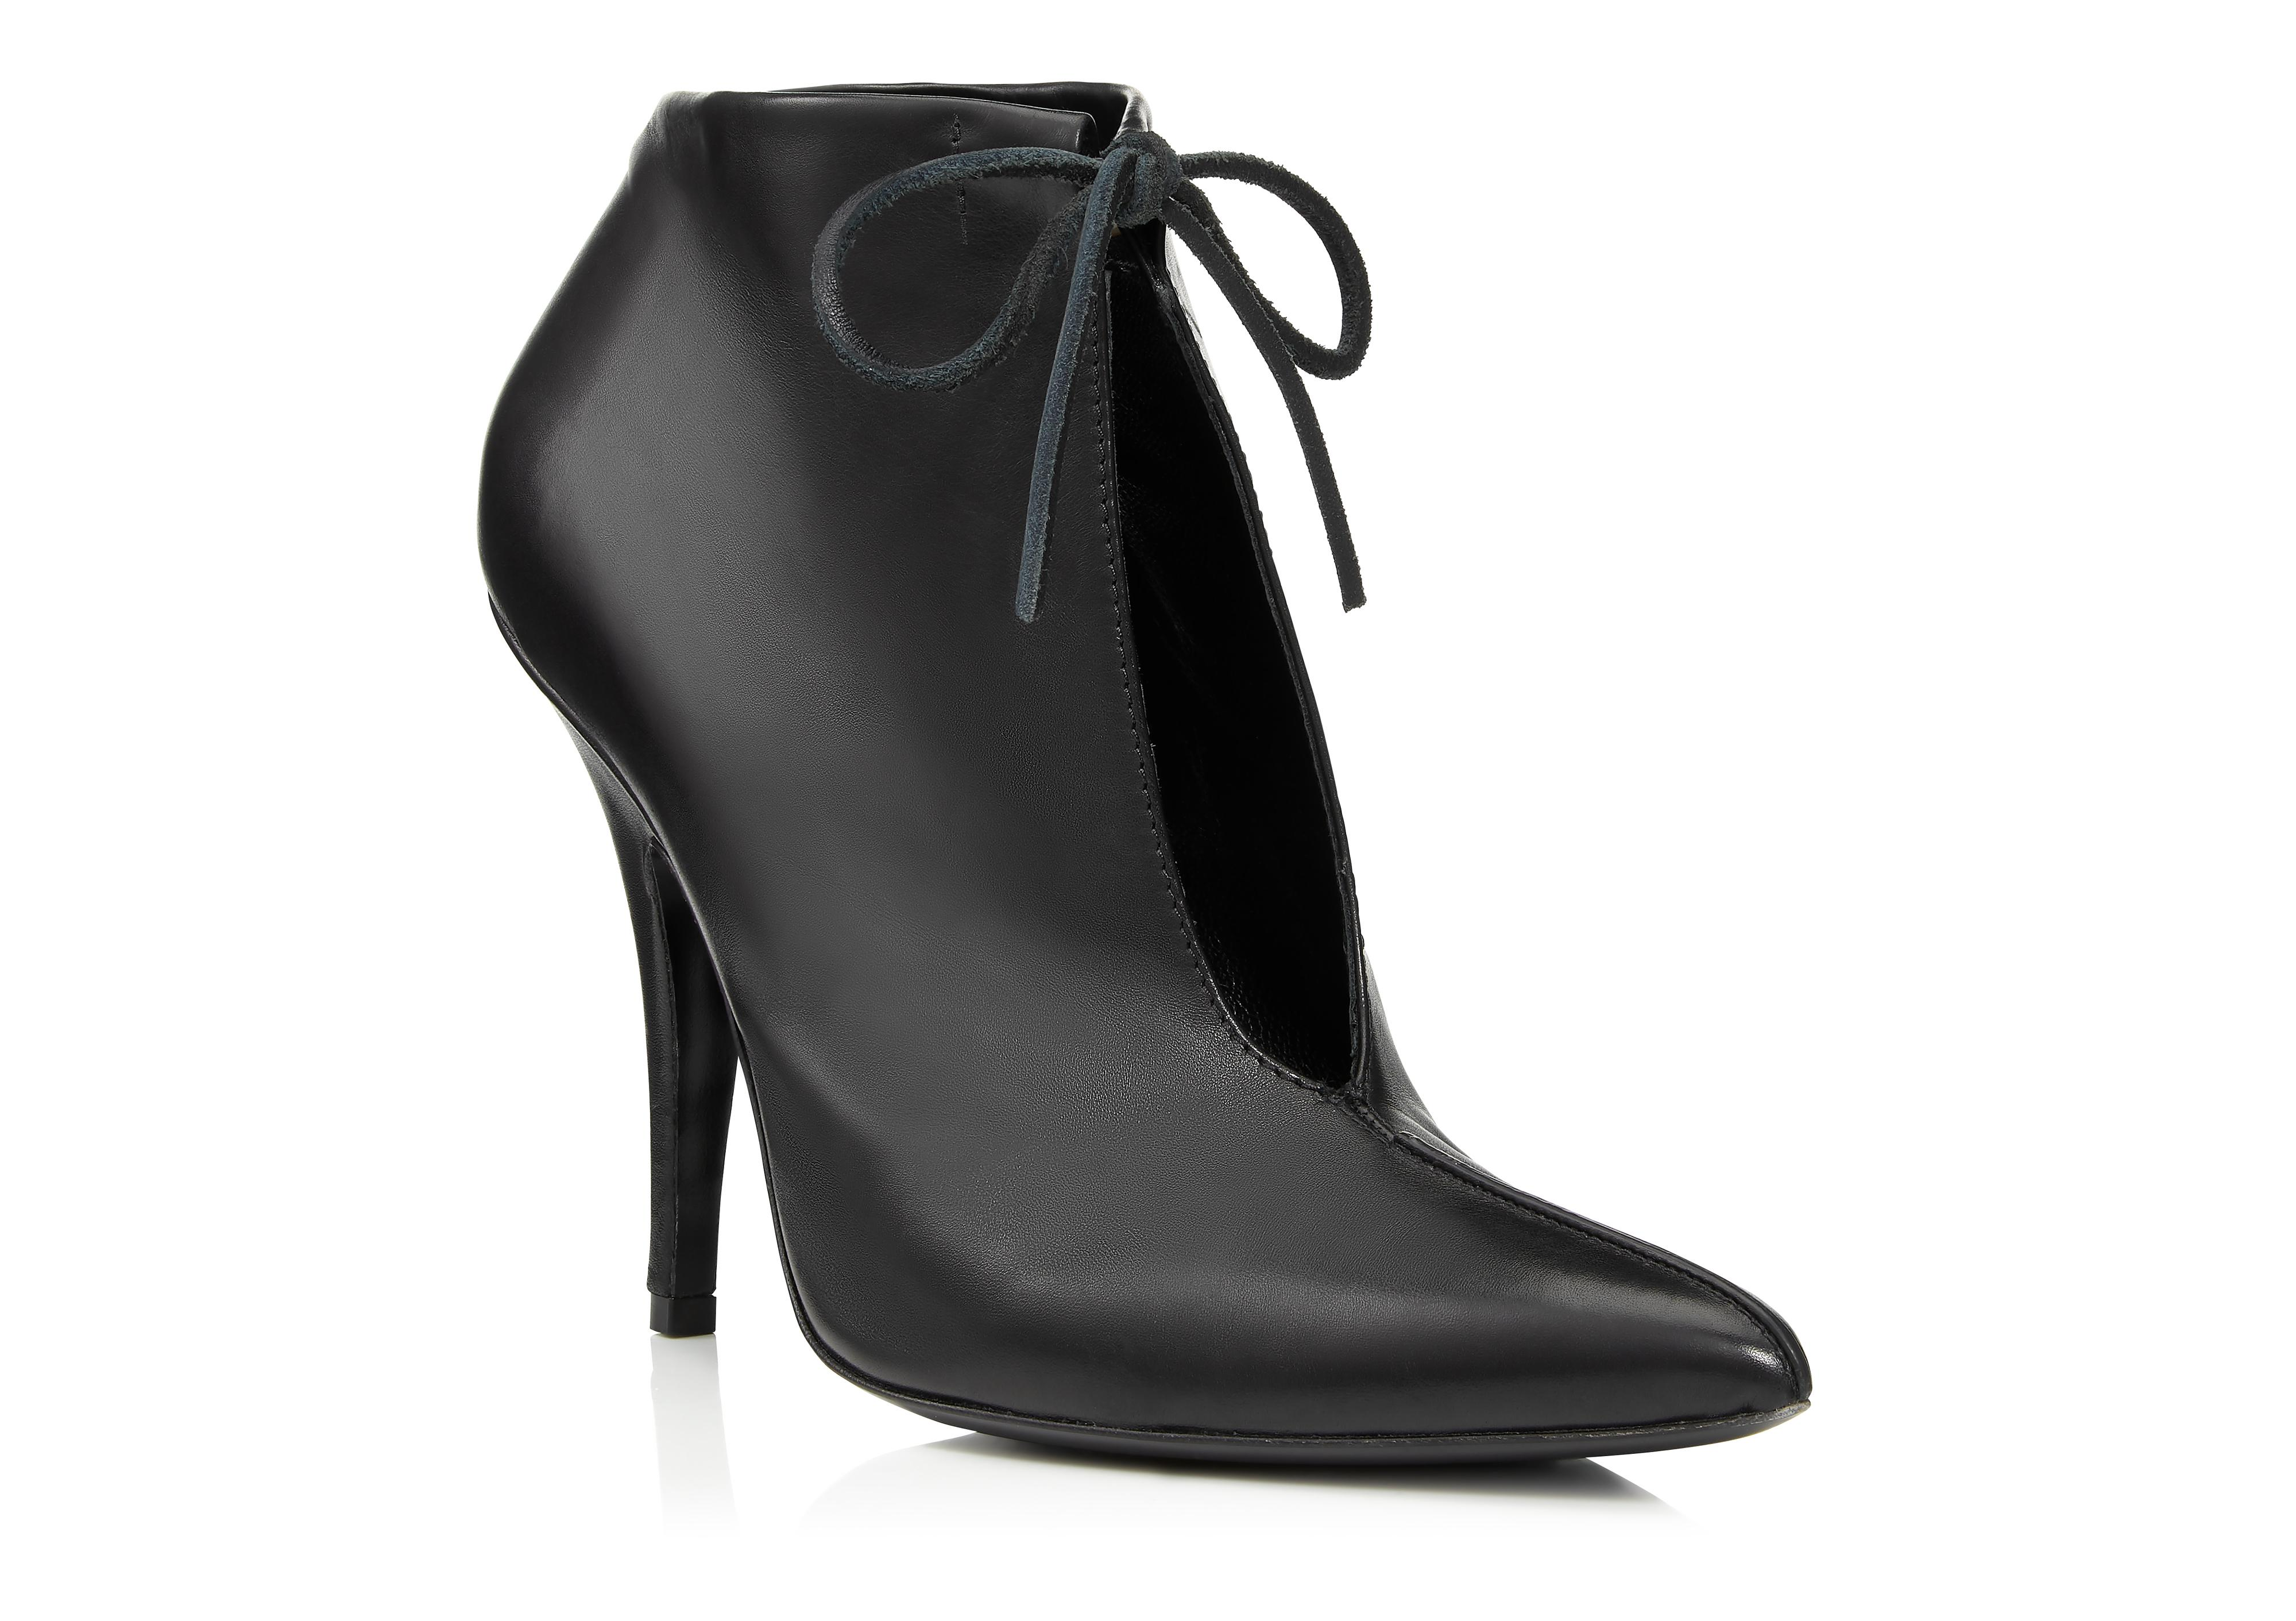 LEATHER ELLIPSE ANKLE BOOT B thumbnail